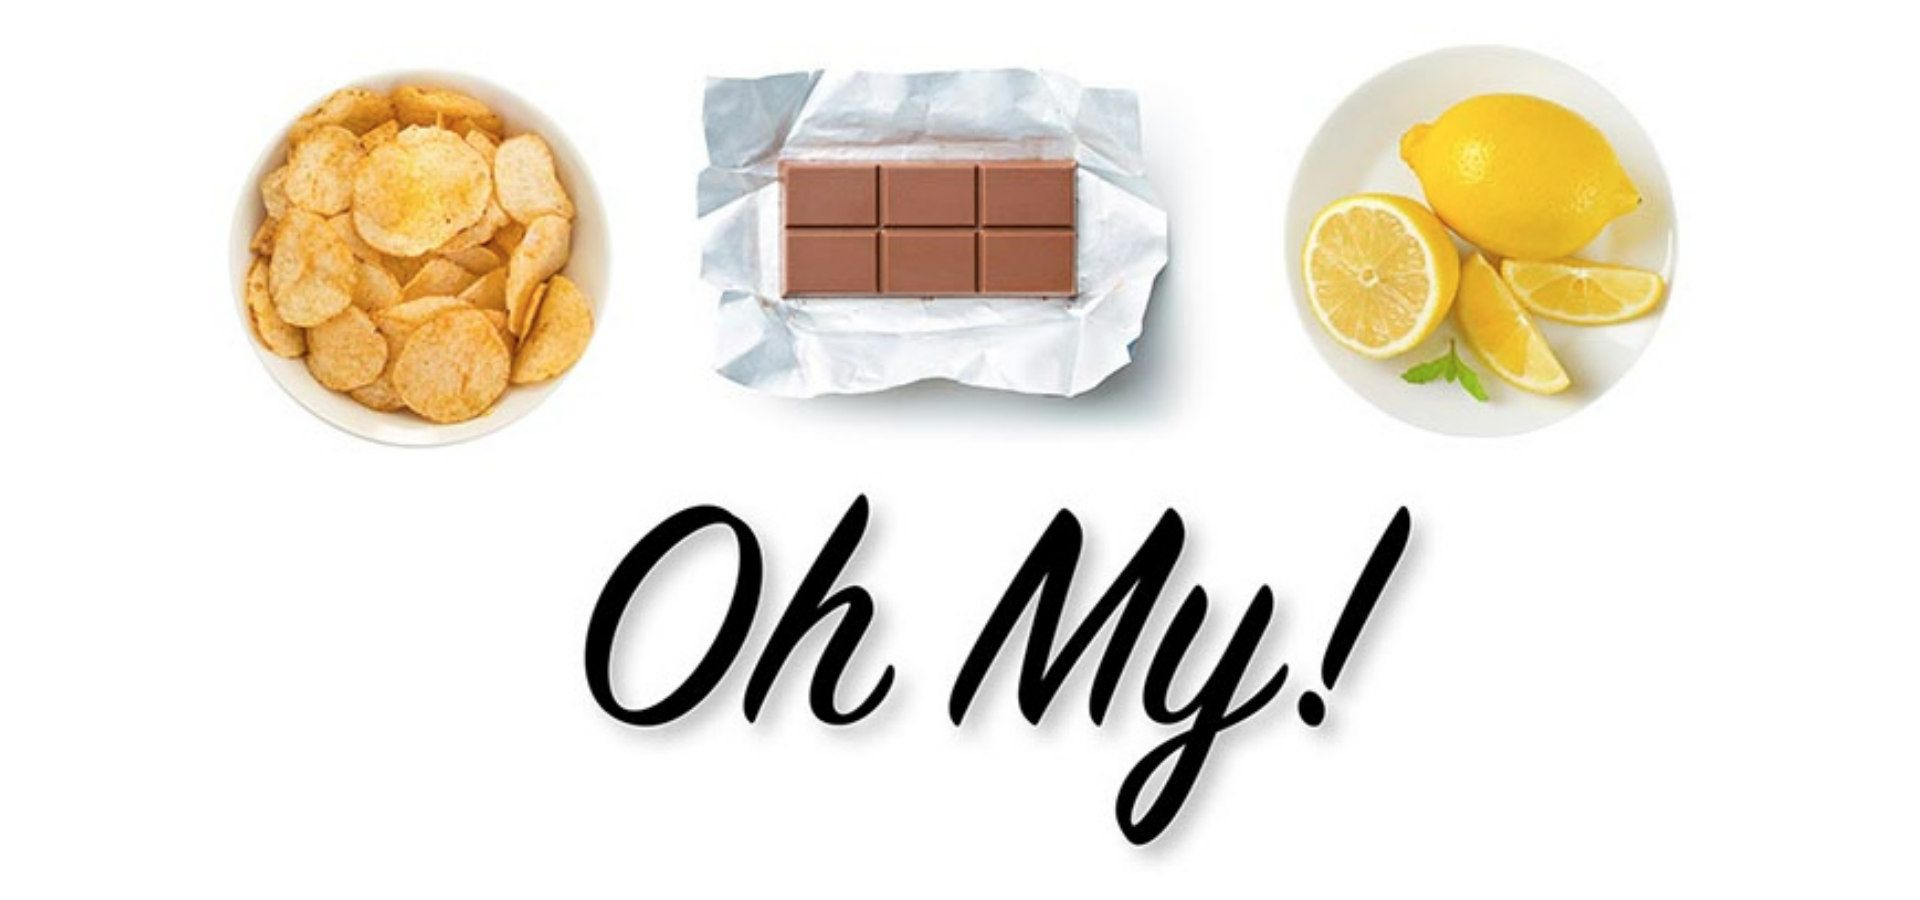 CHIPS… CHOCOLATE… LEMONS?